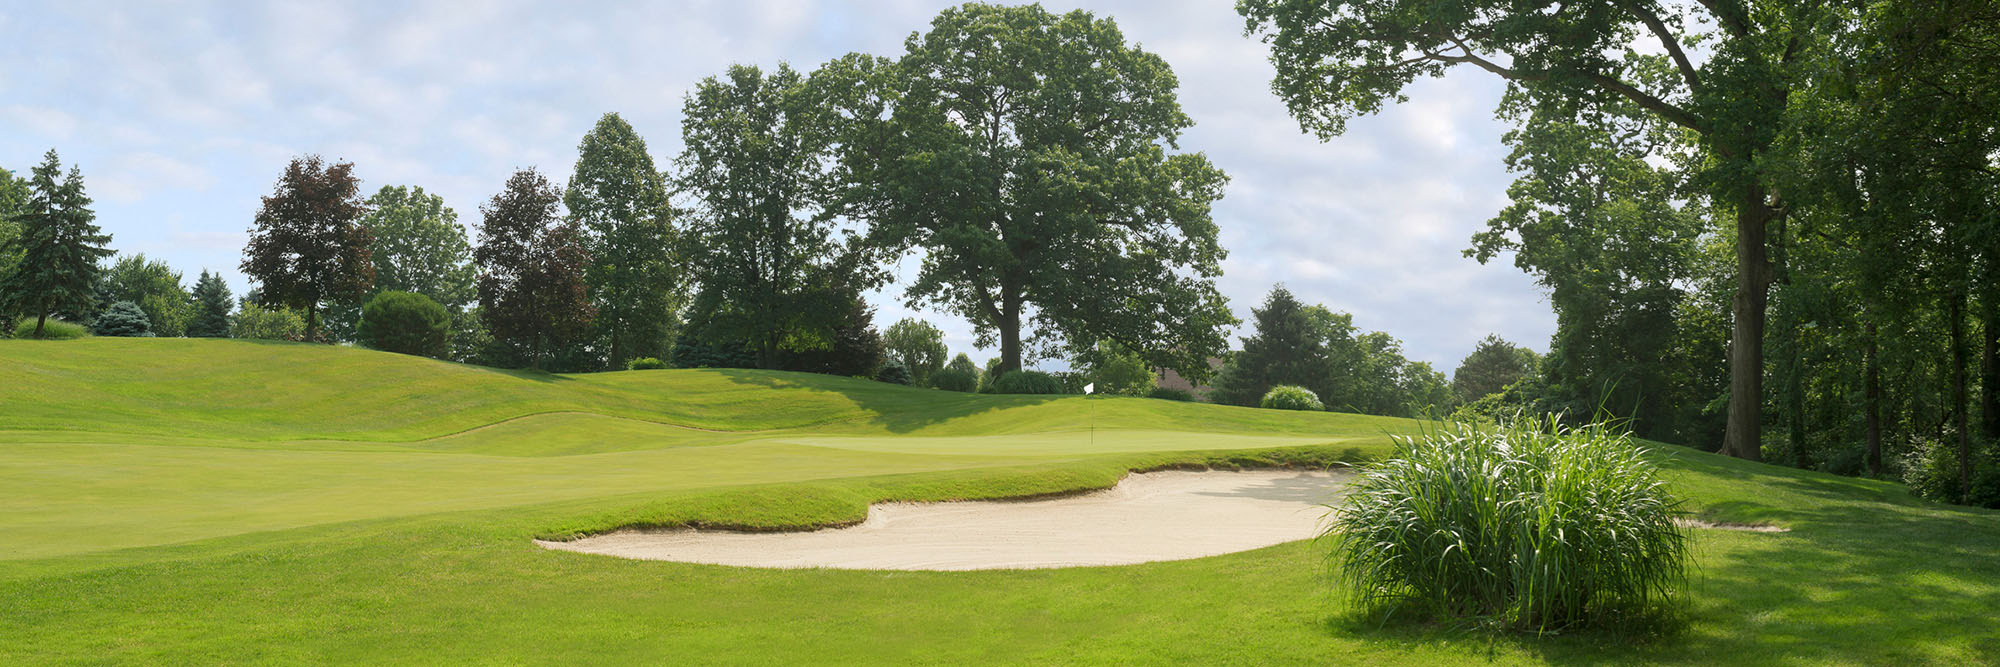 Golf Course Image - Glenmoor Country Club No. 17